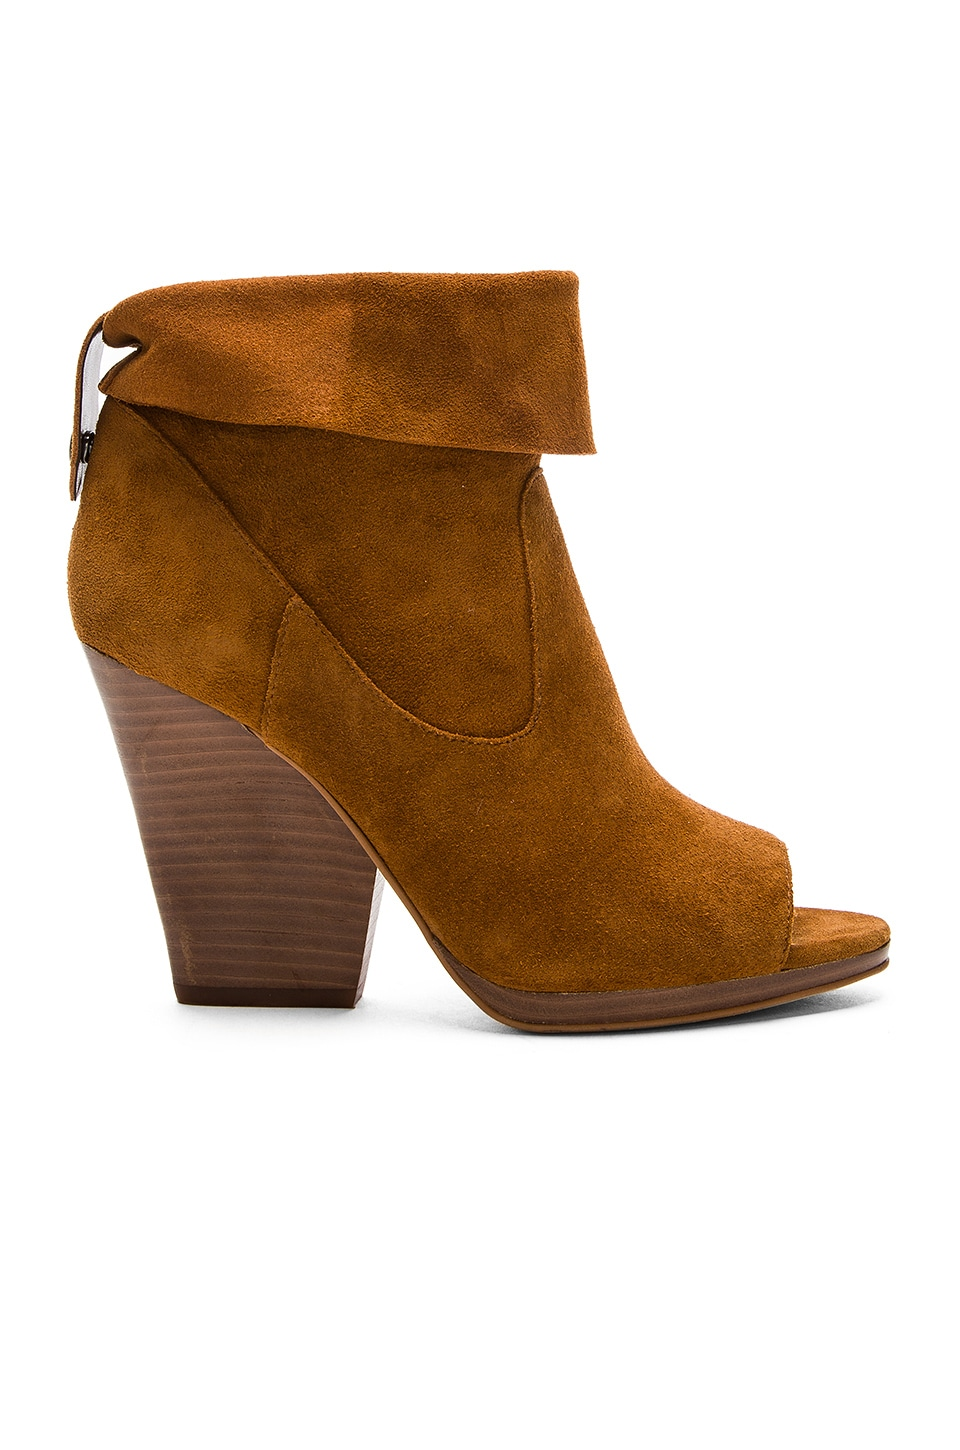 Judelle Booties by Vince Camuto